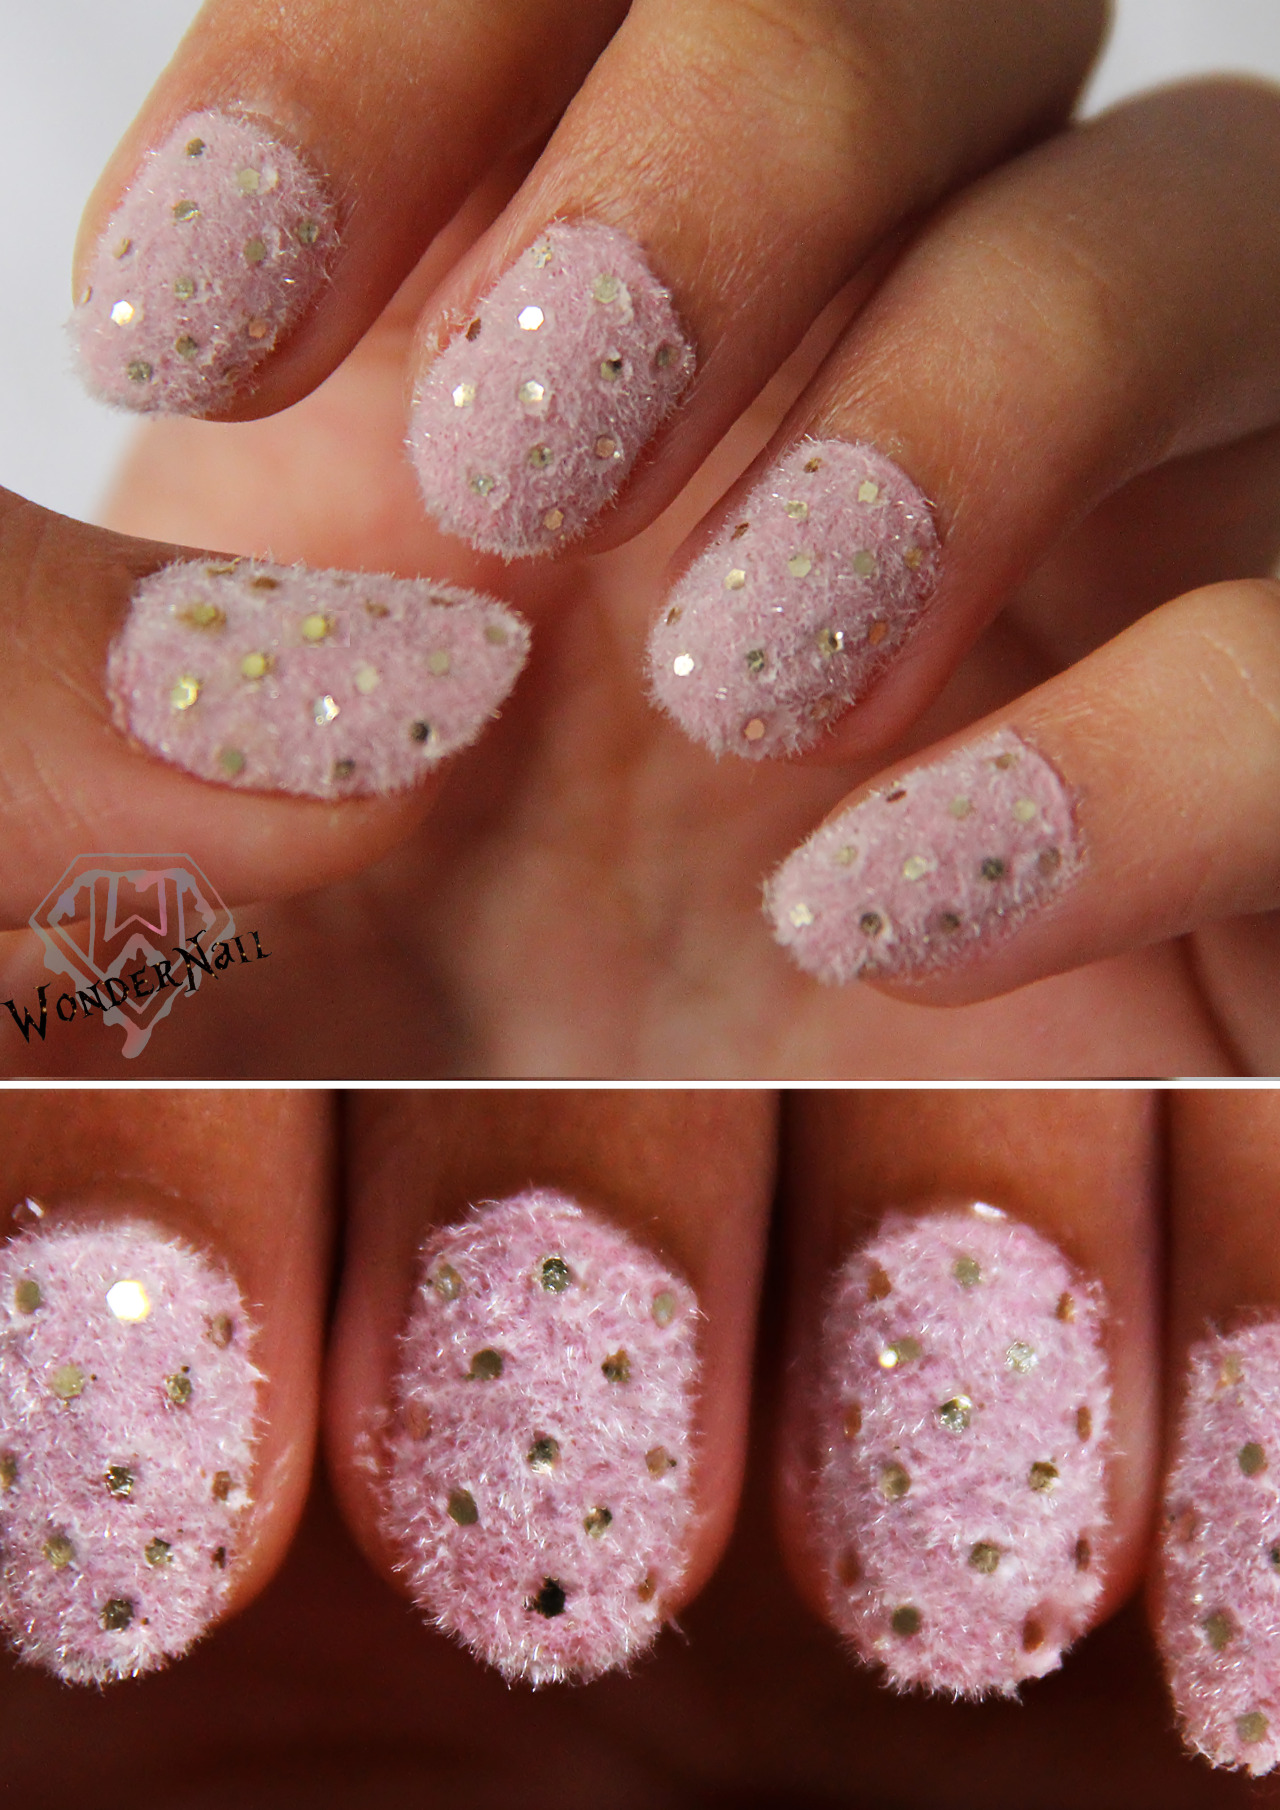 Fuzzy nail art with glitter polka dots!!!I used floc powder to create the velvet effect (: